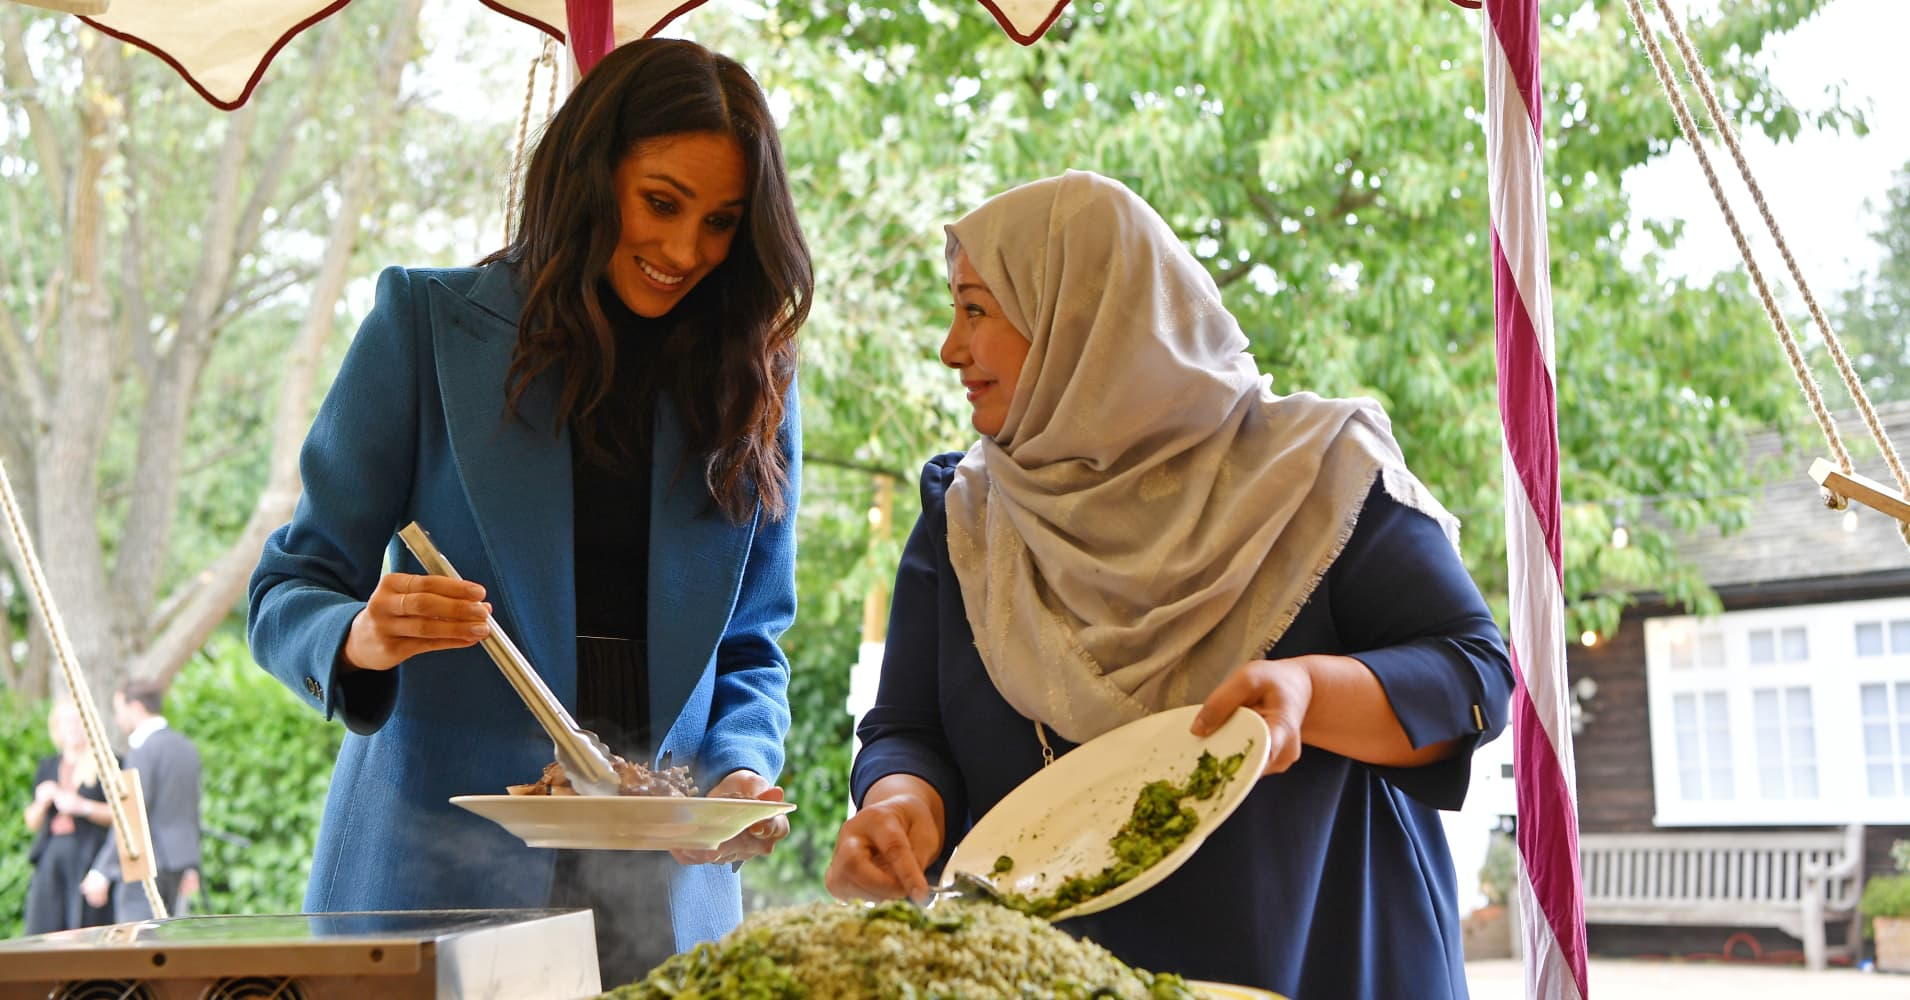 Meghan, Duchess of Sussex helps to prepare food at an event to mark the launch of a cookbook with recipes from a group of women affected by the Grenfell Tower fire at Kensington Palace on Sept. 20.